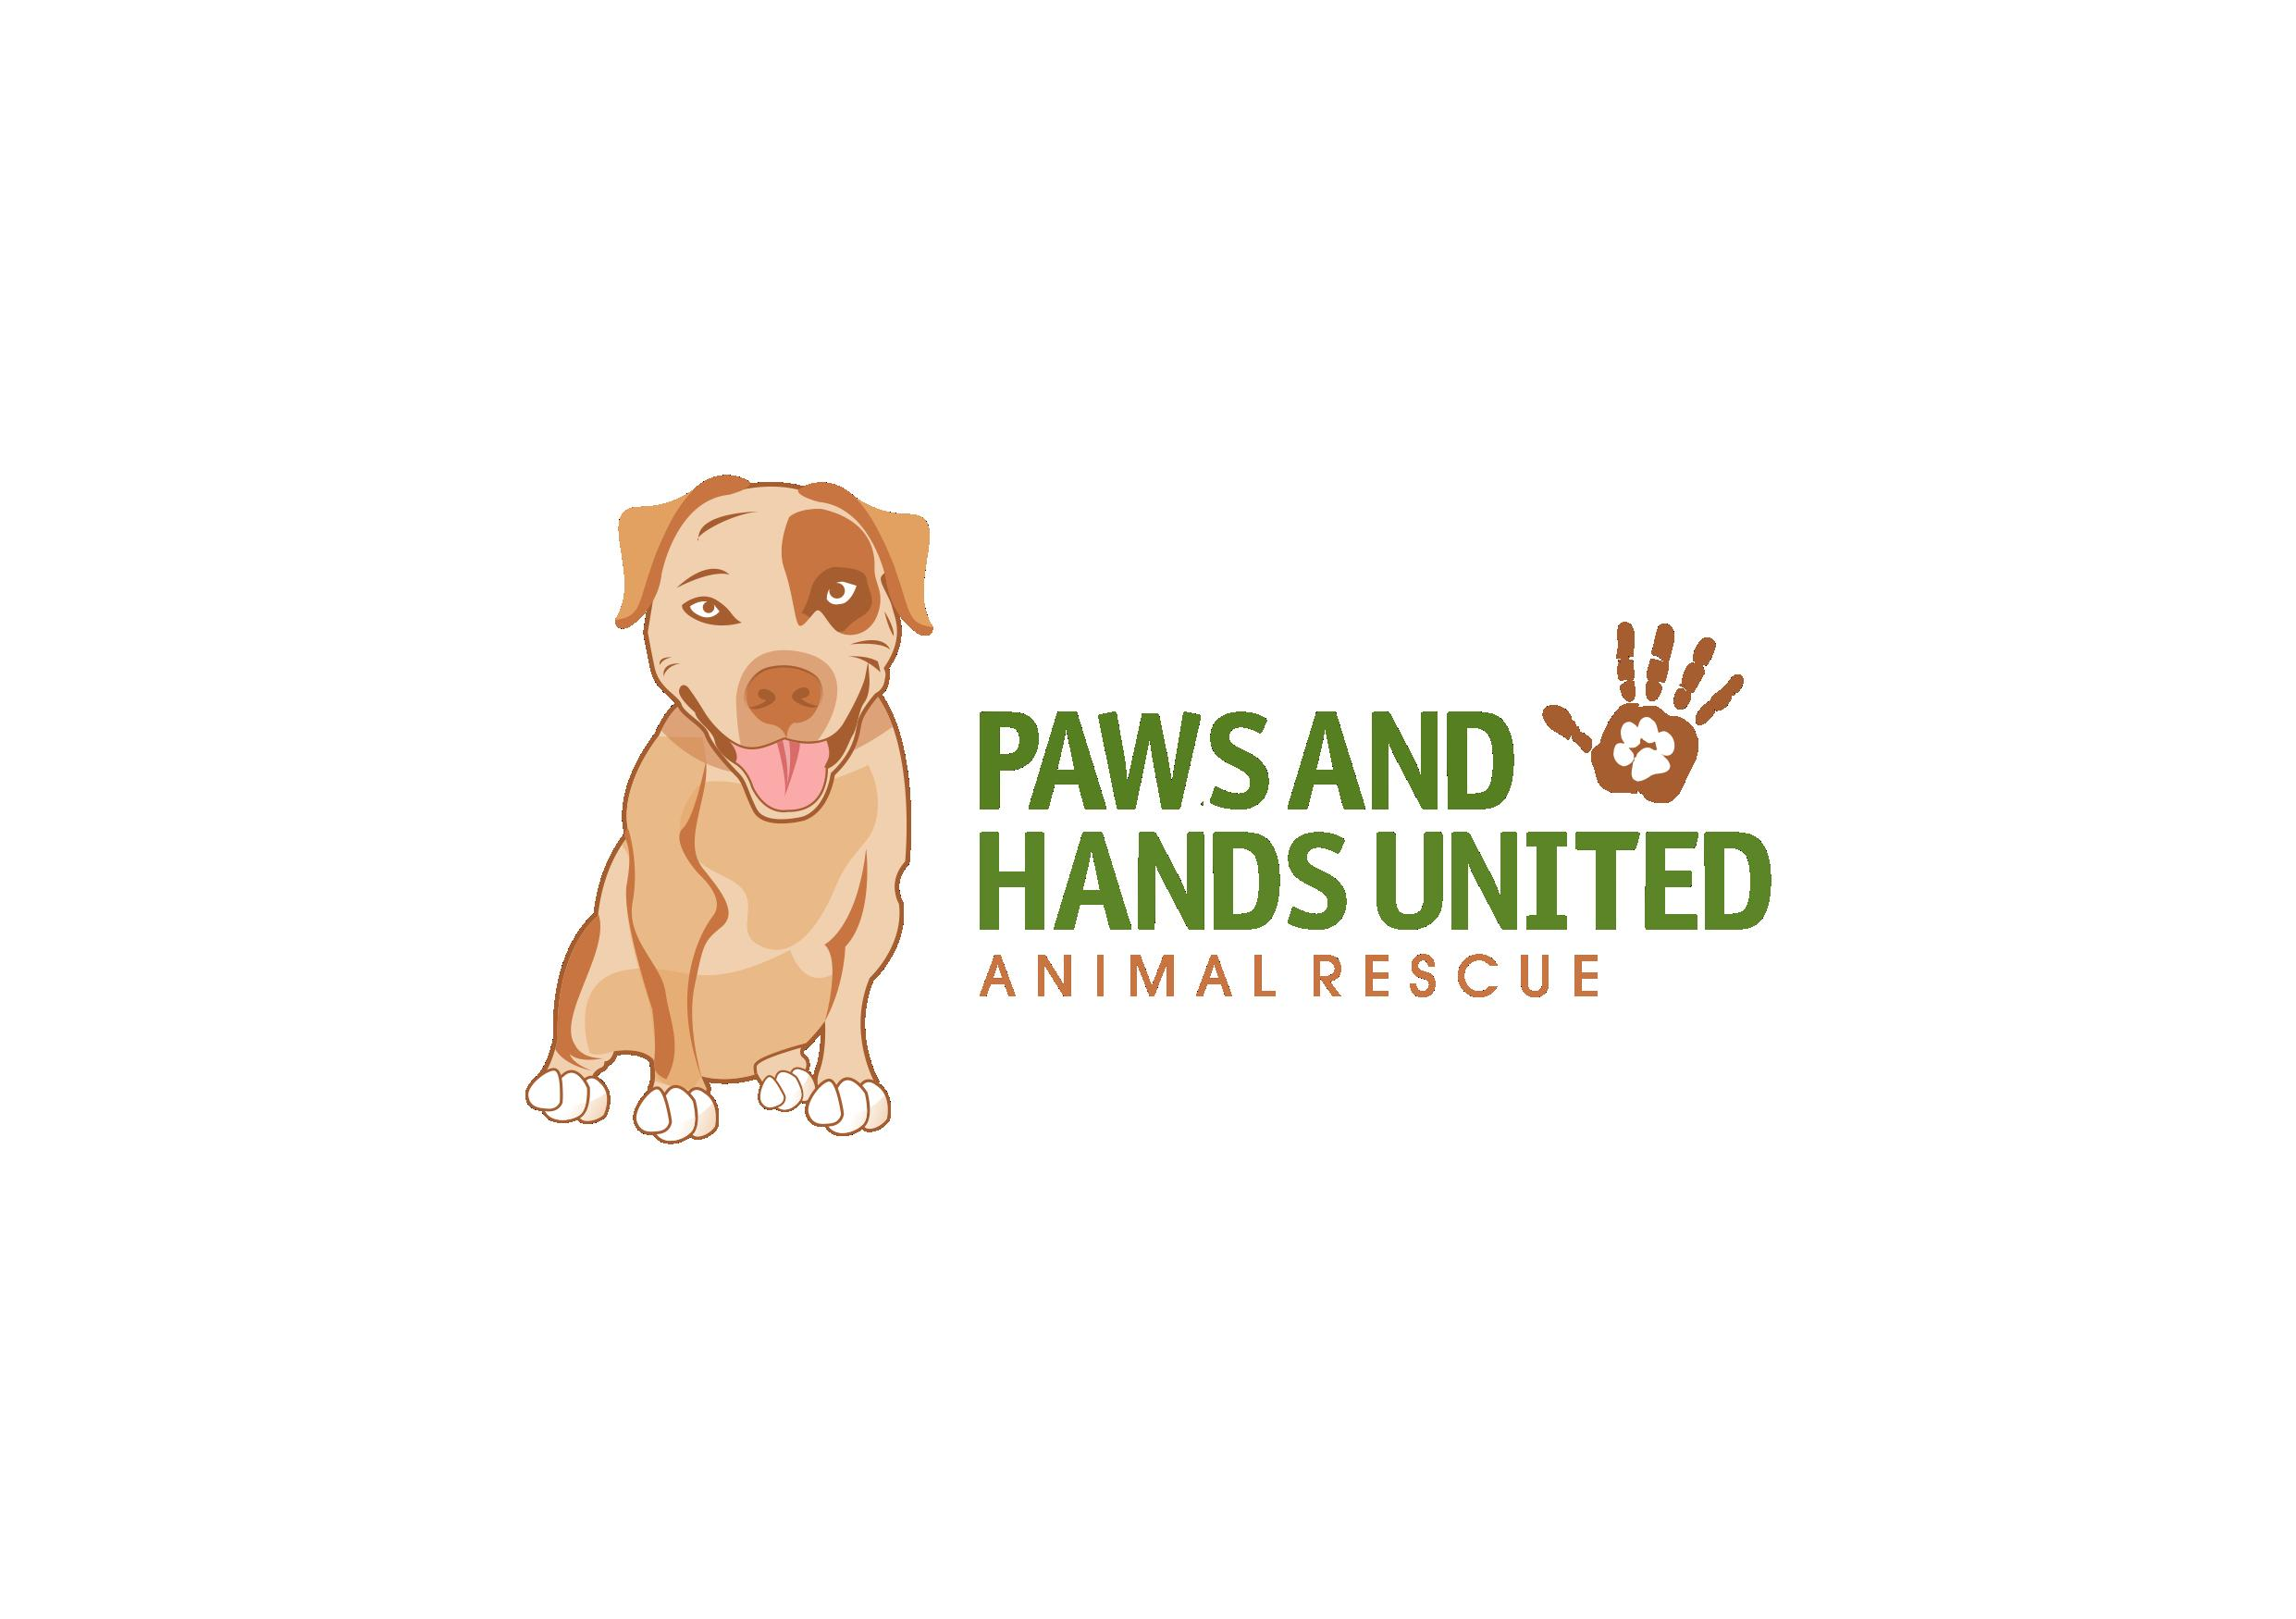 Paws and Hands United